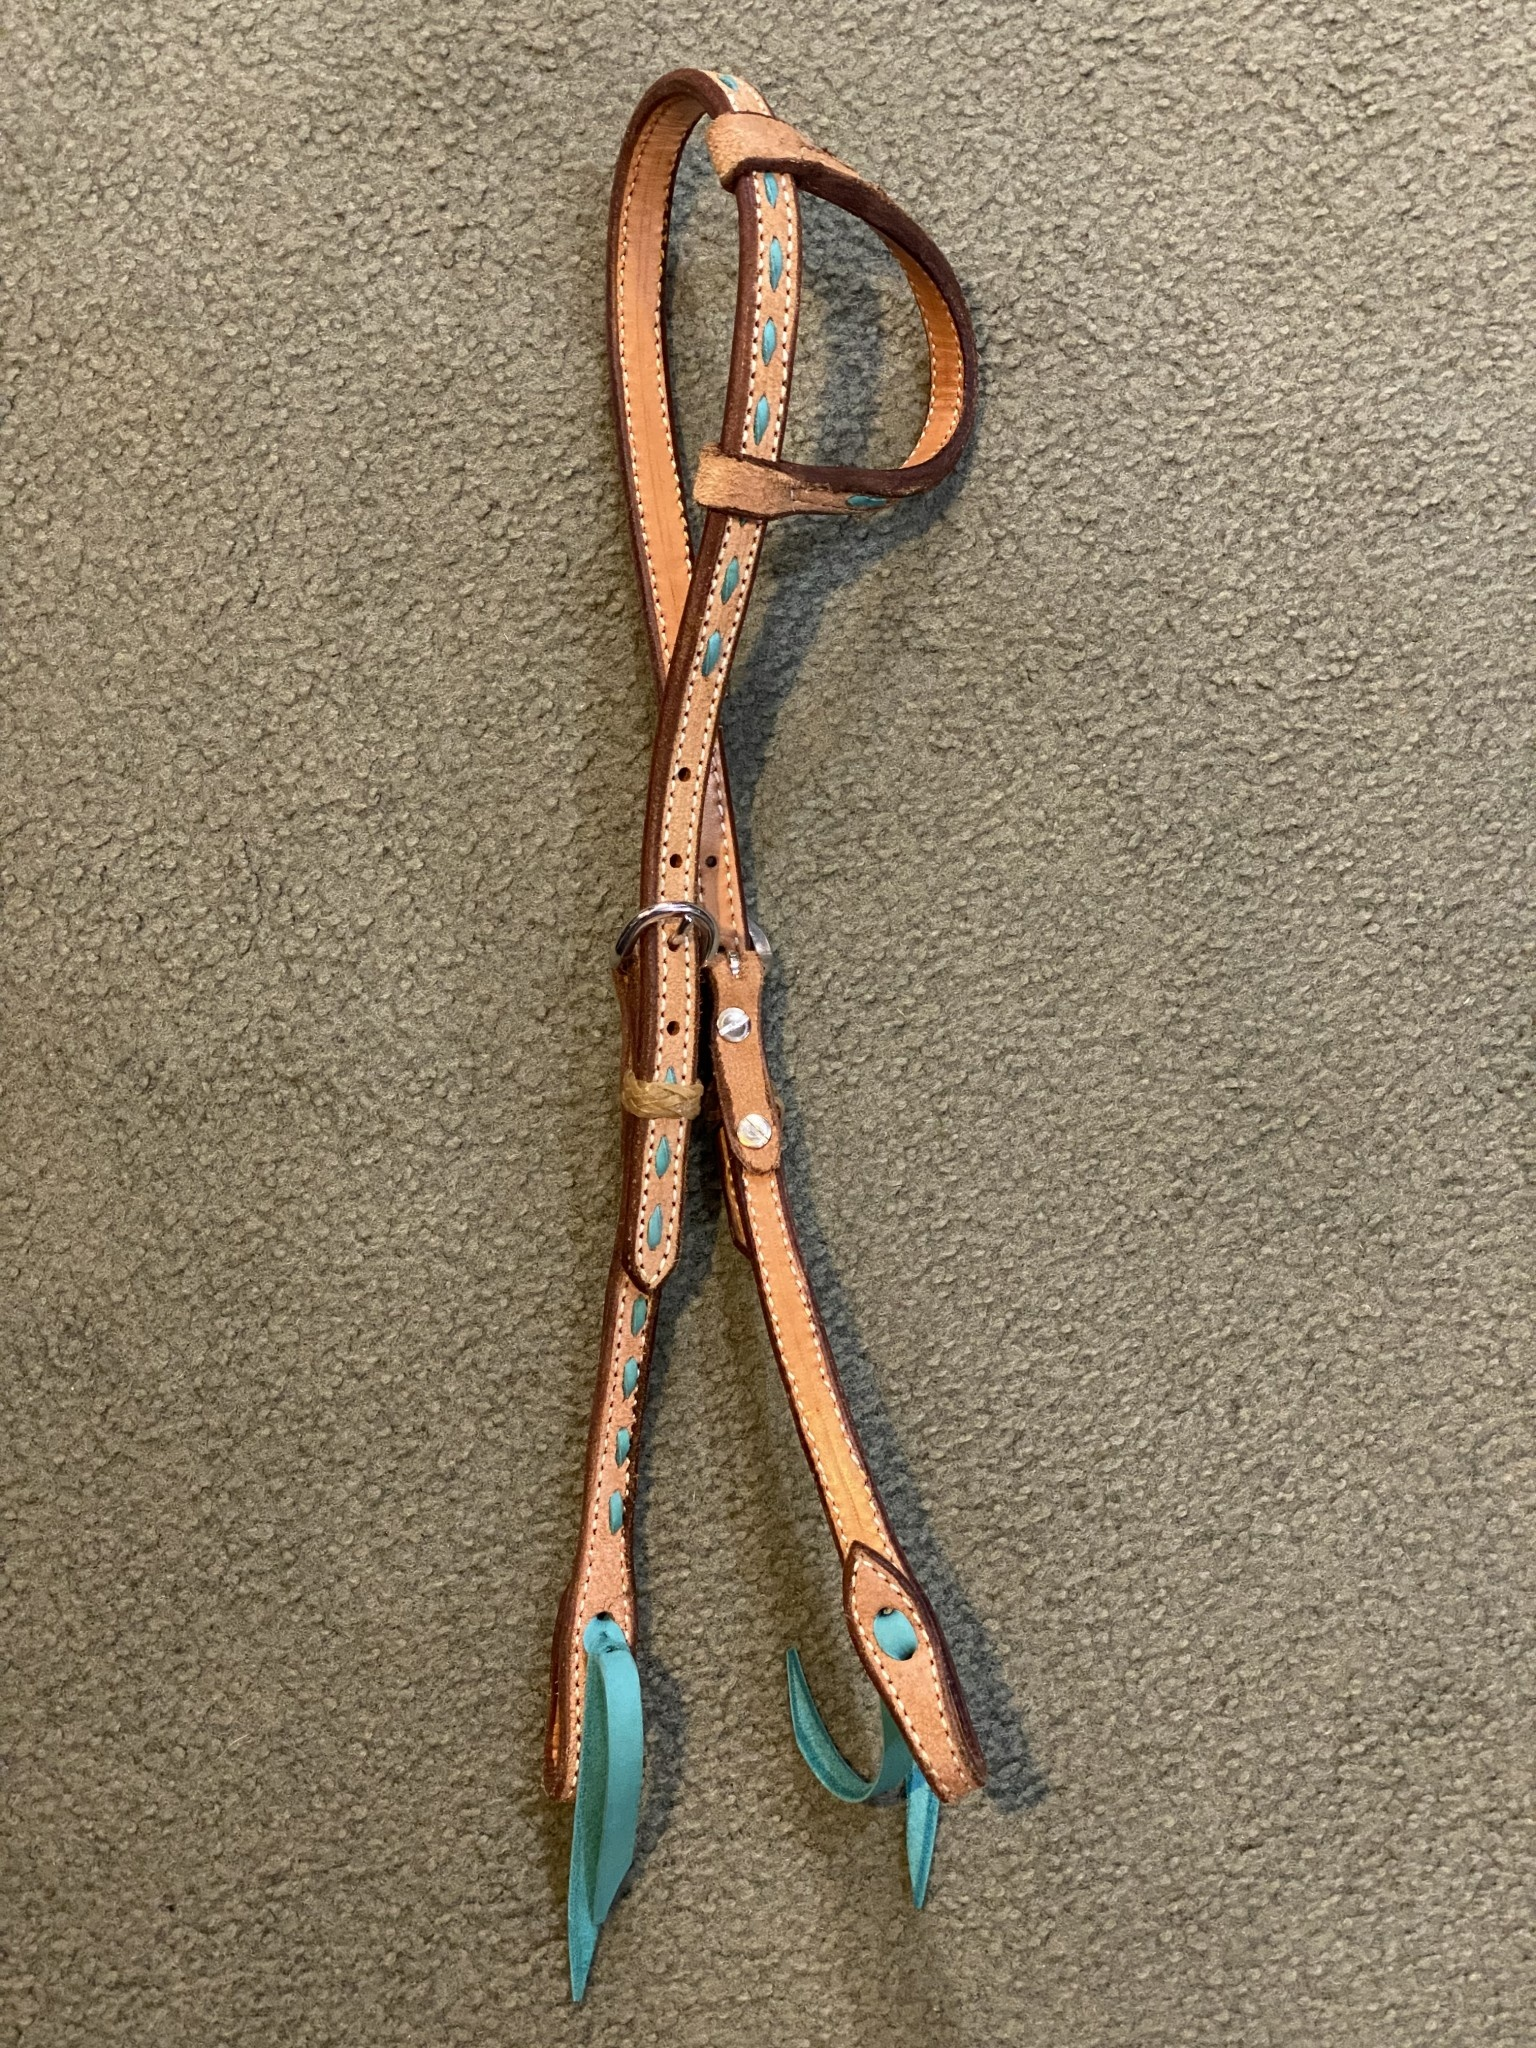 Circle L Circle L One Ear Headstall, w/Teal Lace - Horse Size